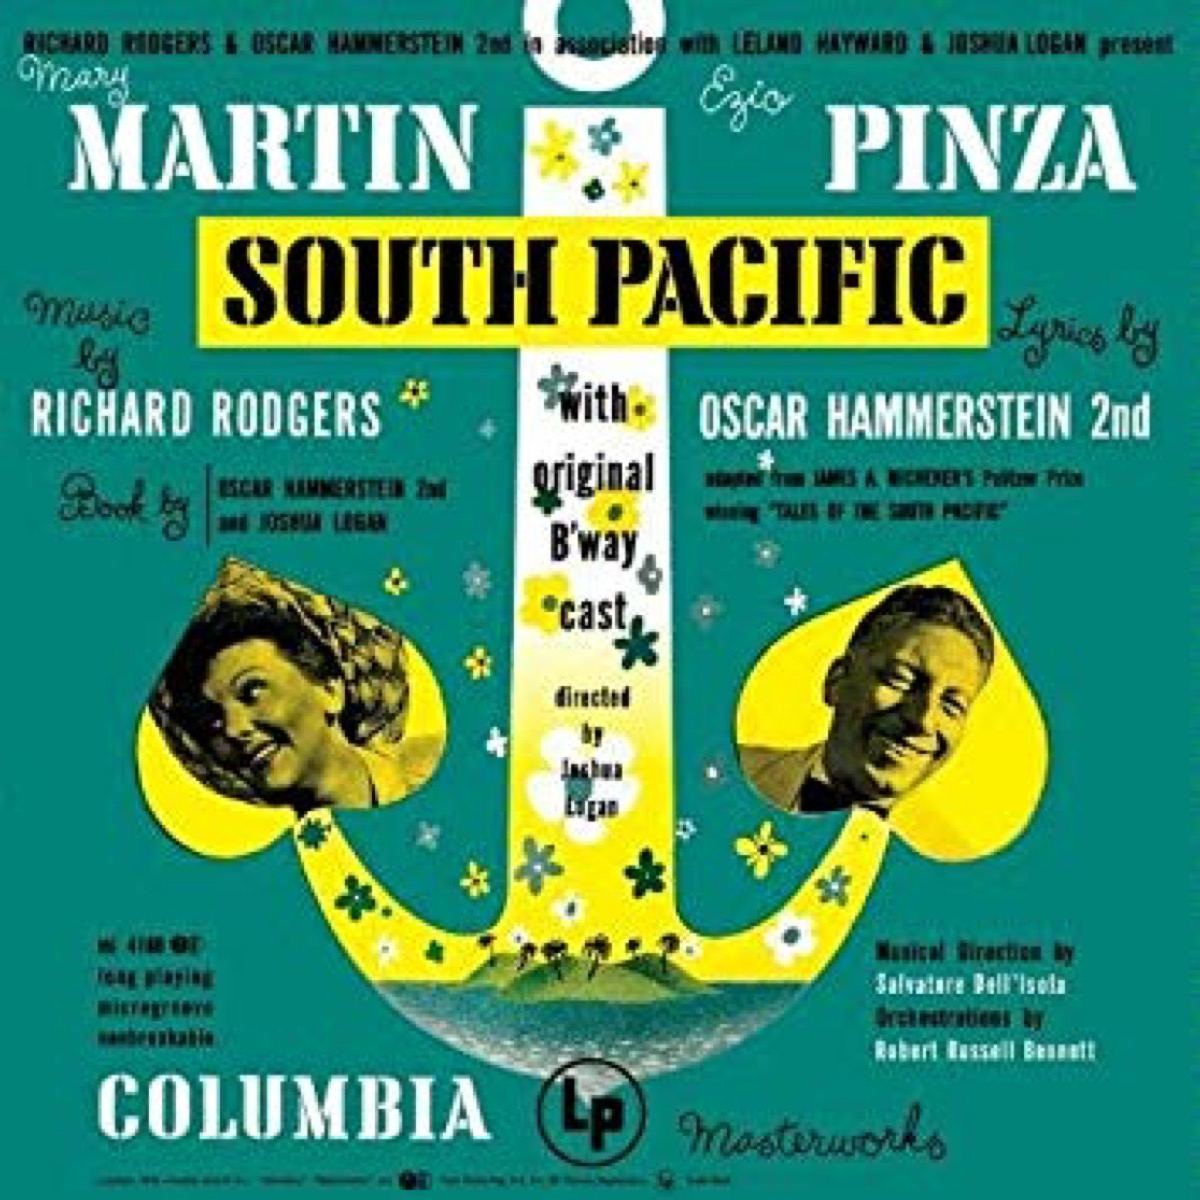 south pacific broadway cast recording